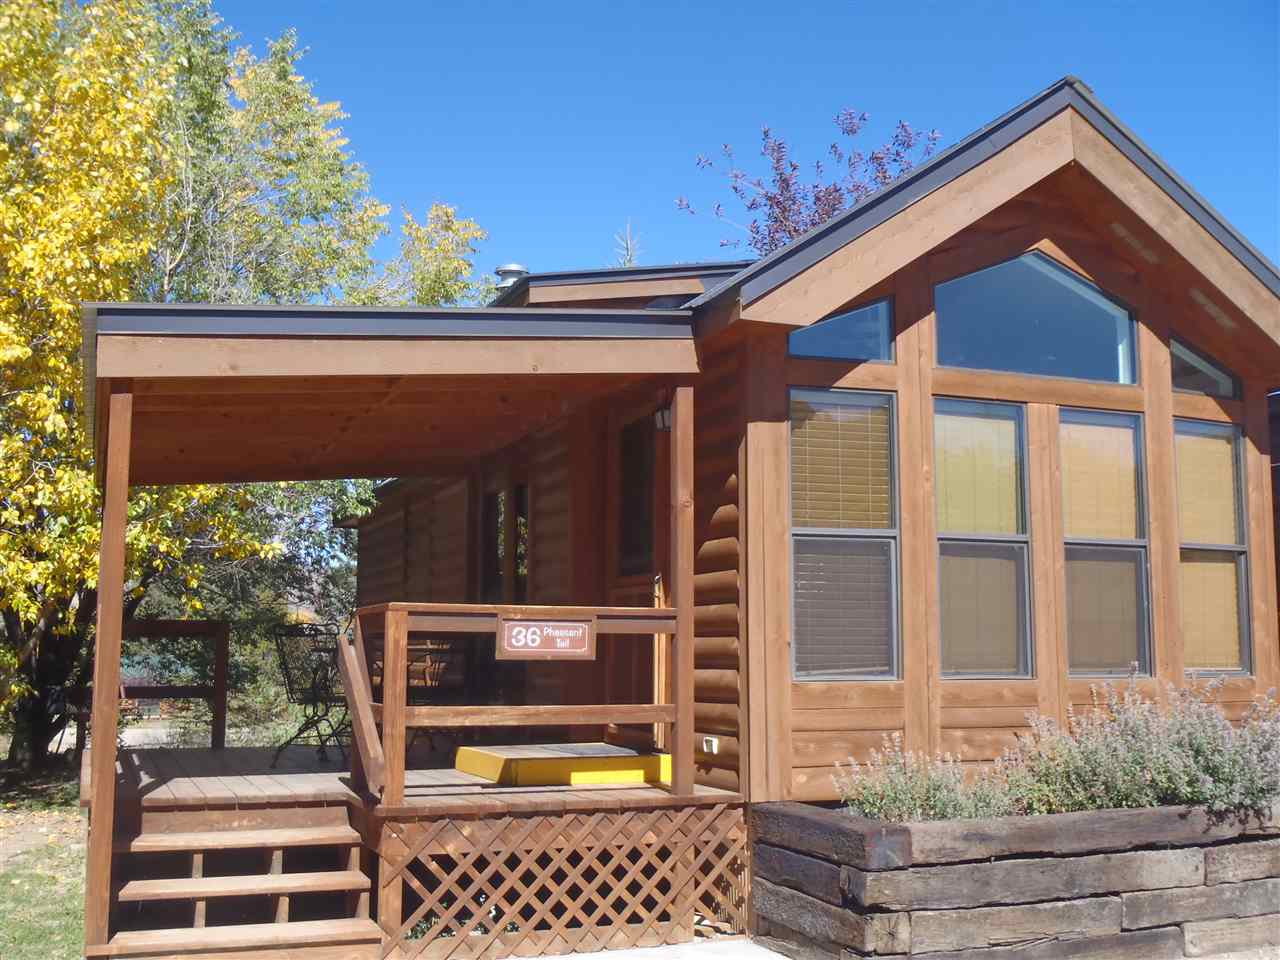 130 County Road 742 Cabin # 38, Almont, CO 81210